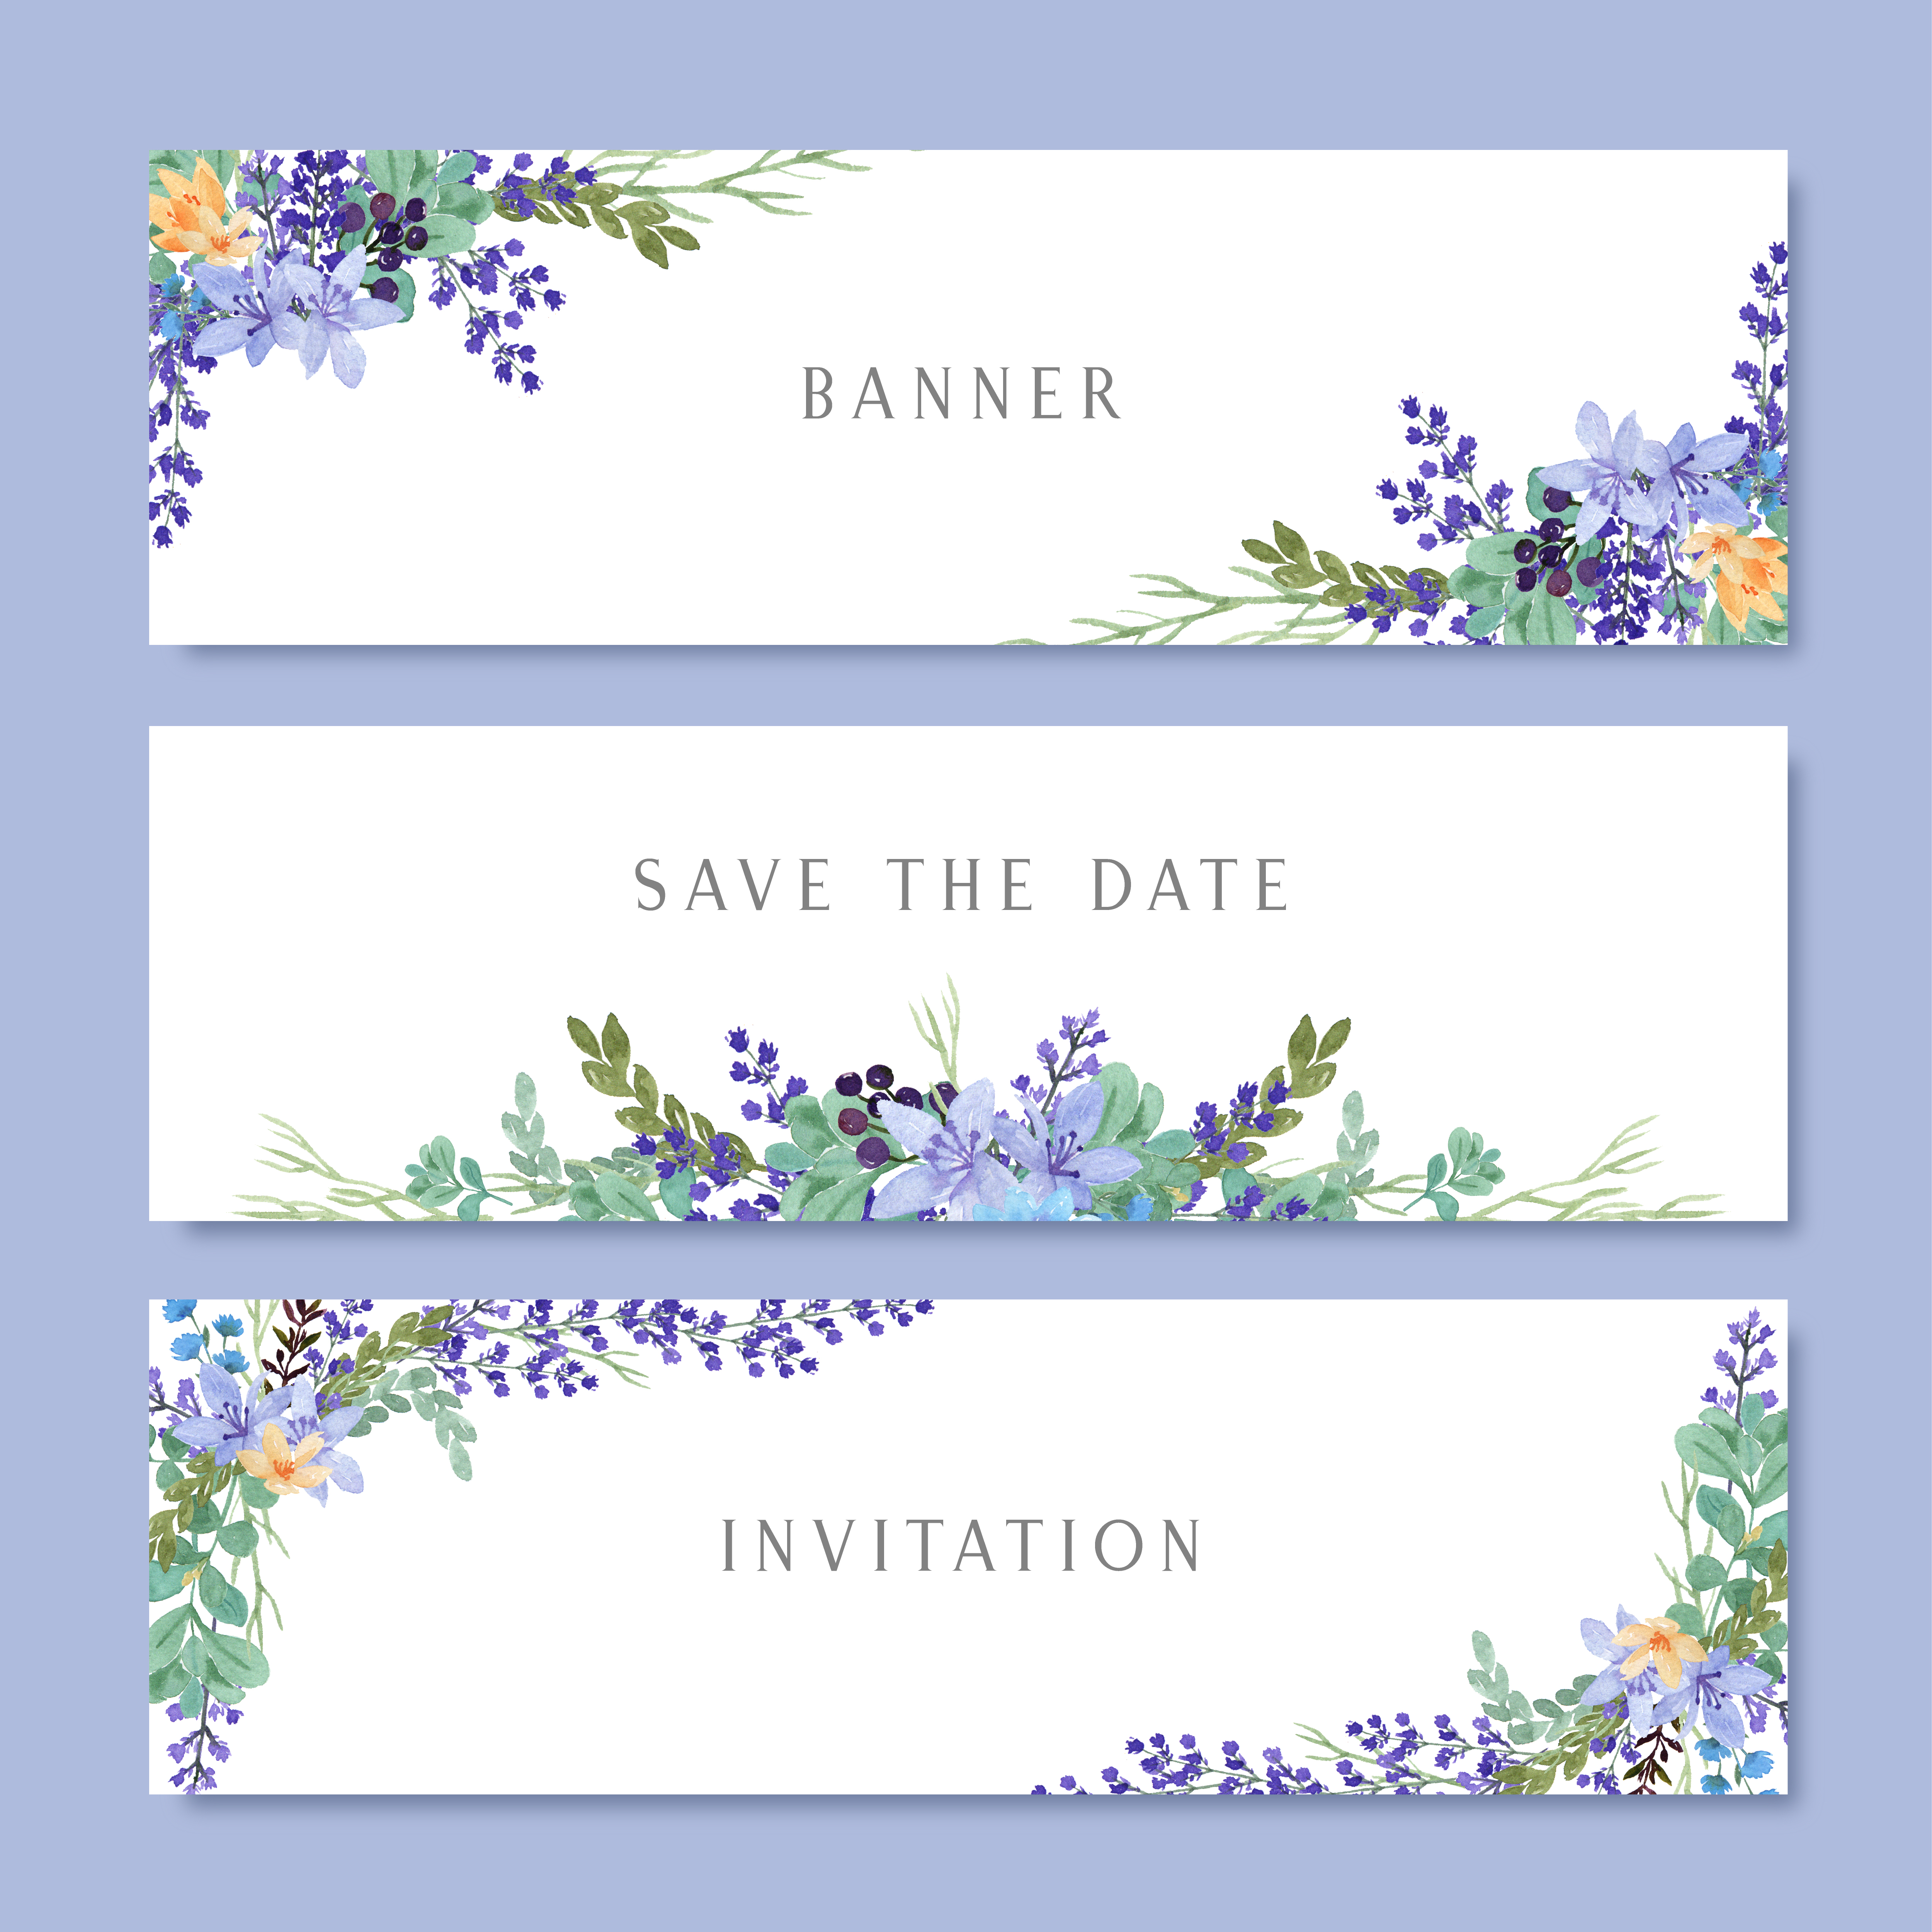 watercolor flowers with text banner lush flowers